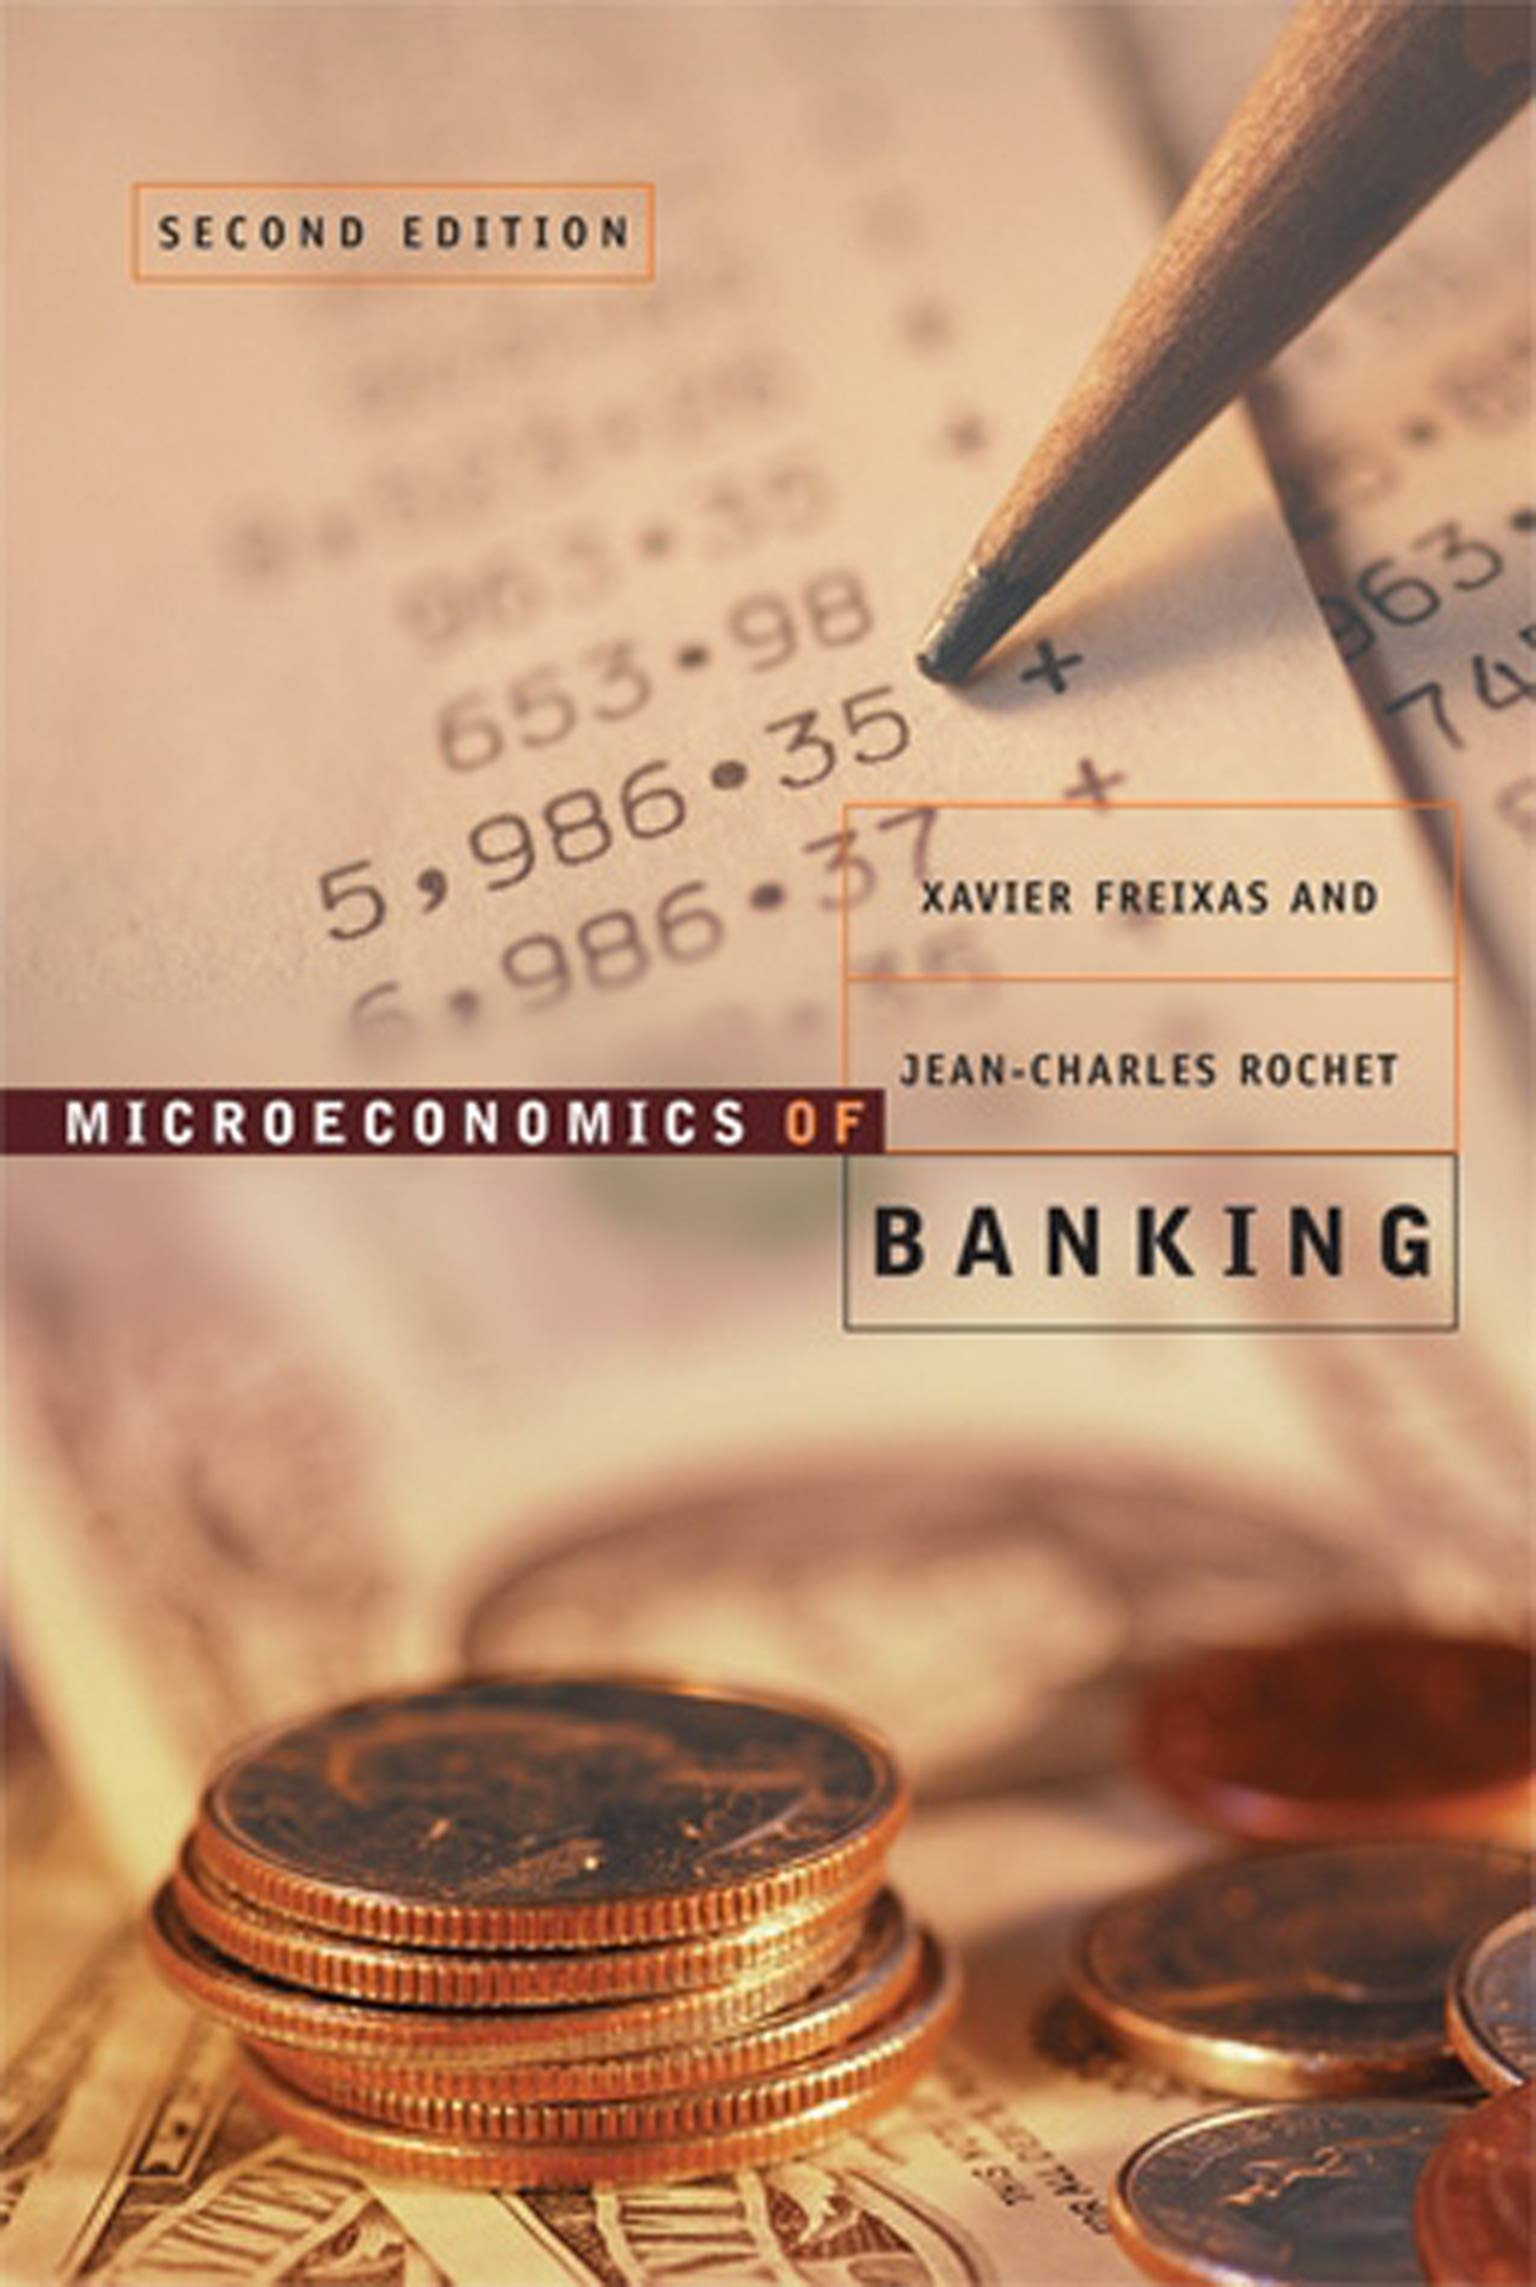 Image OfMicroeconomics Of Banking, Second Edition (Mit Press)